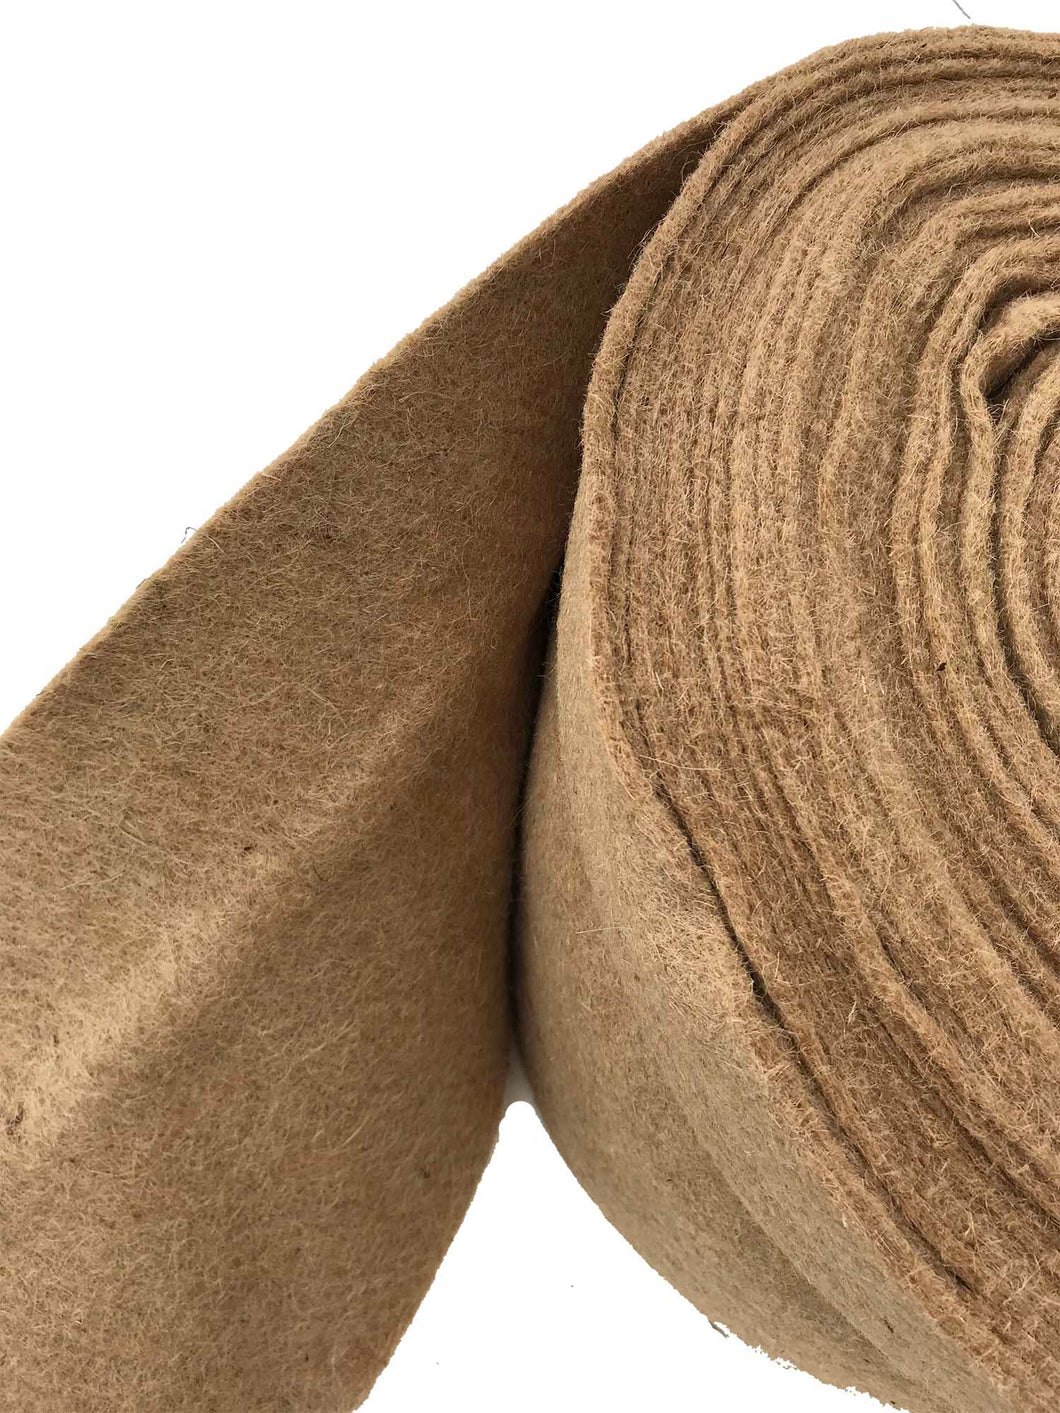 GreenEase JUTE Rolls 9.5 X 100 Ft